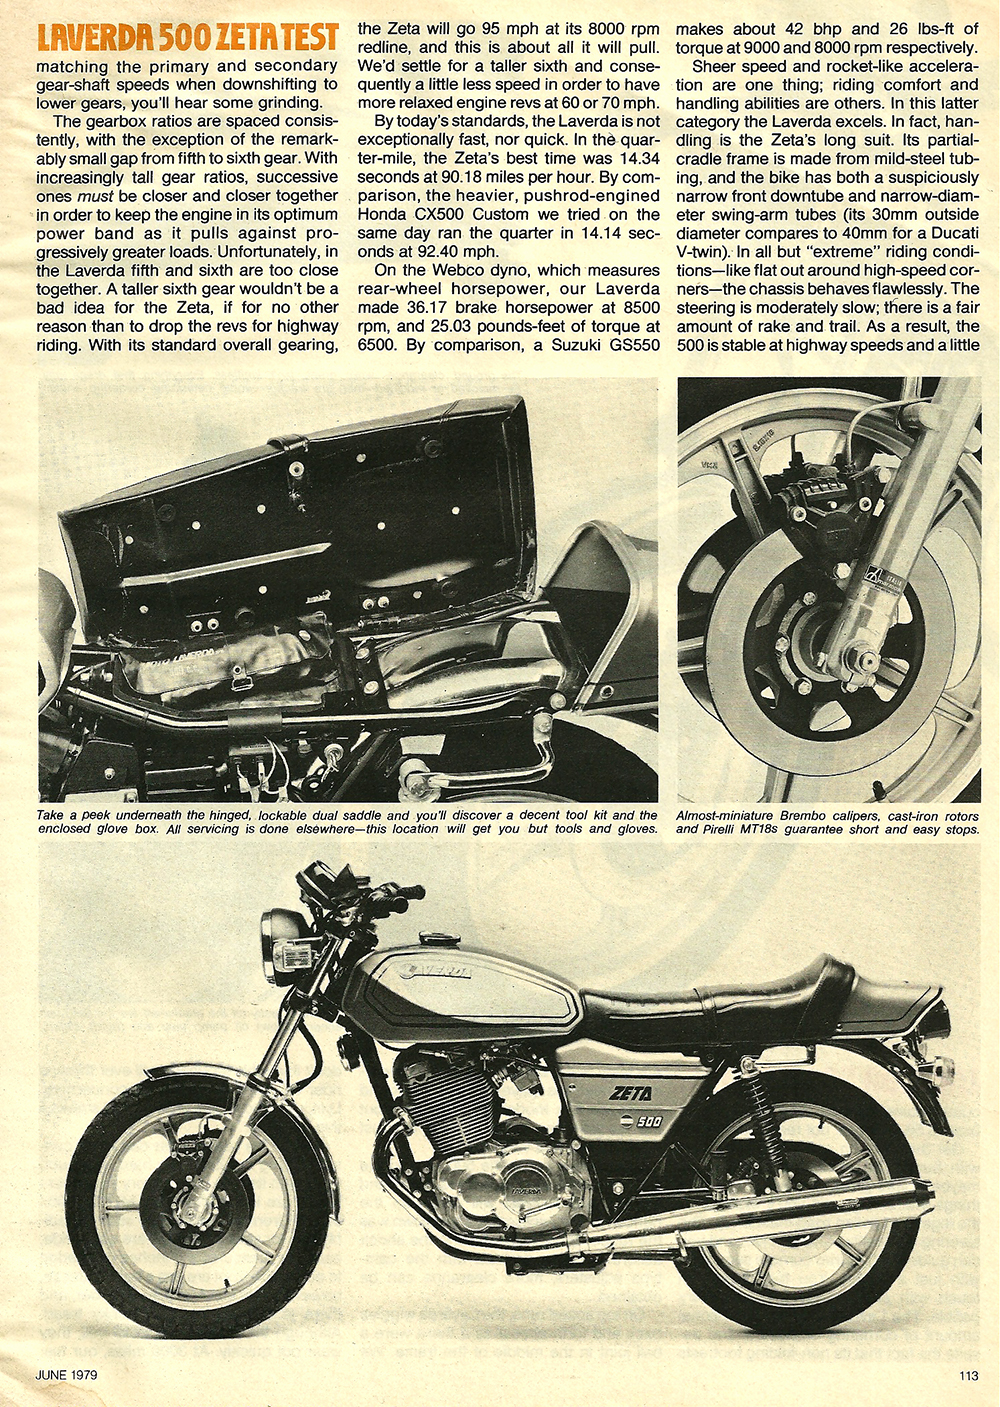 1979 Laverda 500 Zeta road test 4.jpg